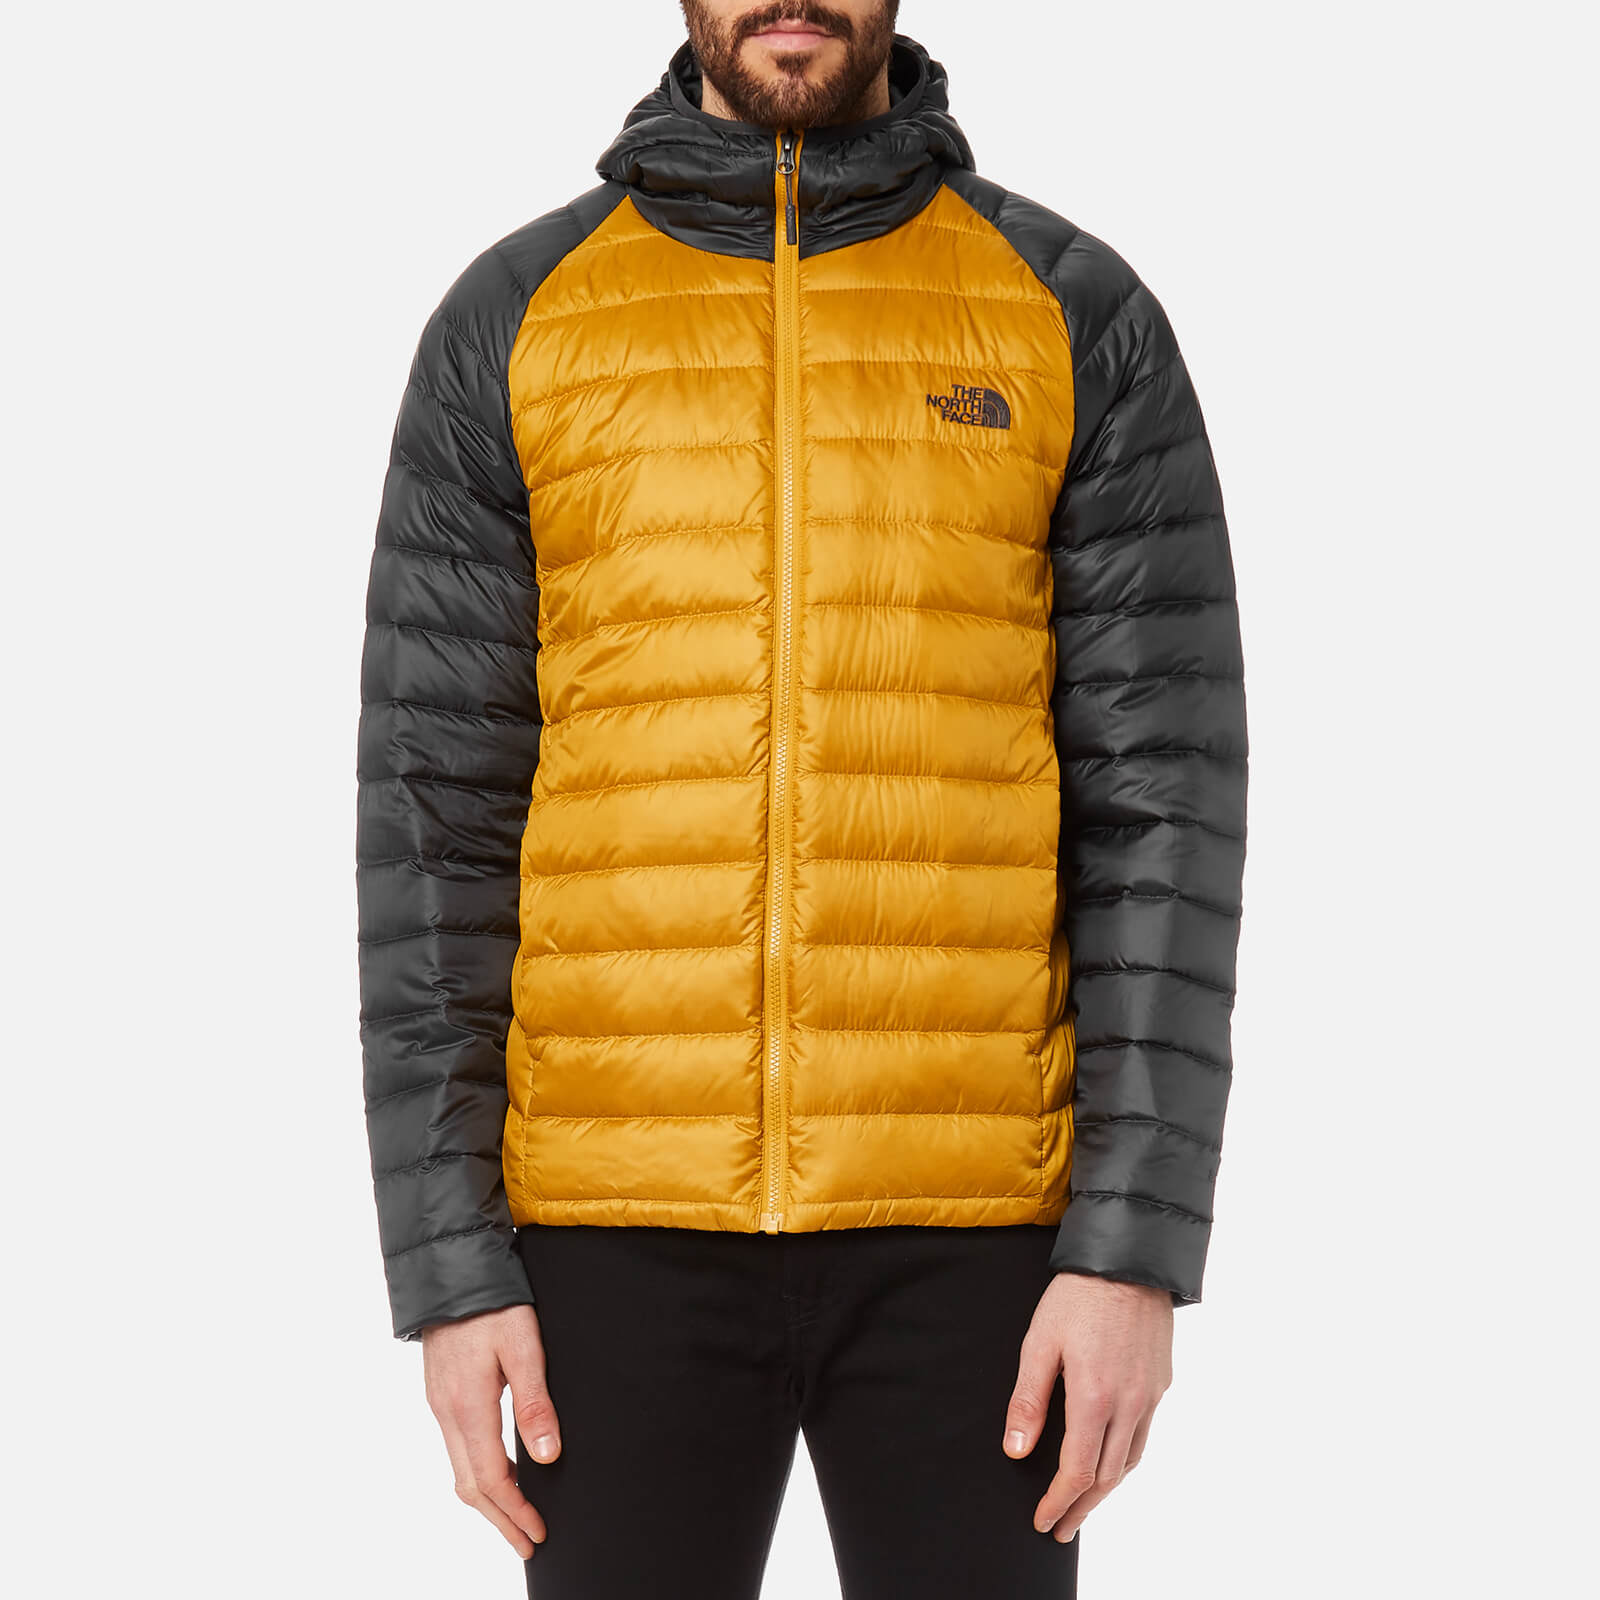 959eb48c3970 The North Face Men s Trevail Hoody - Arrowwood Yellow Asphalt Grey Mens  Clothing